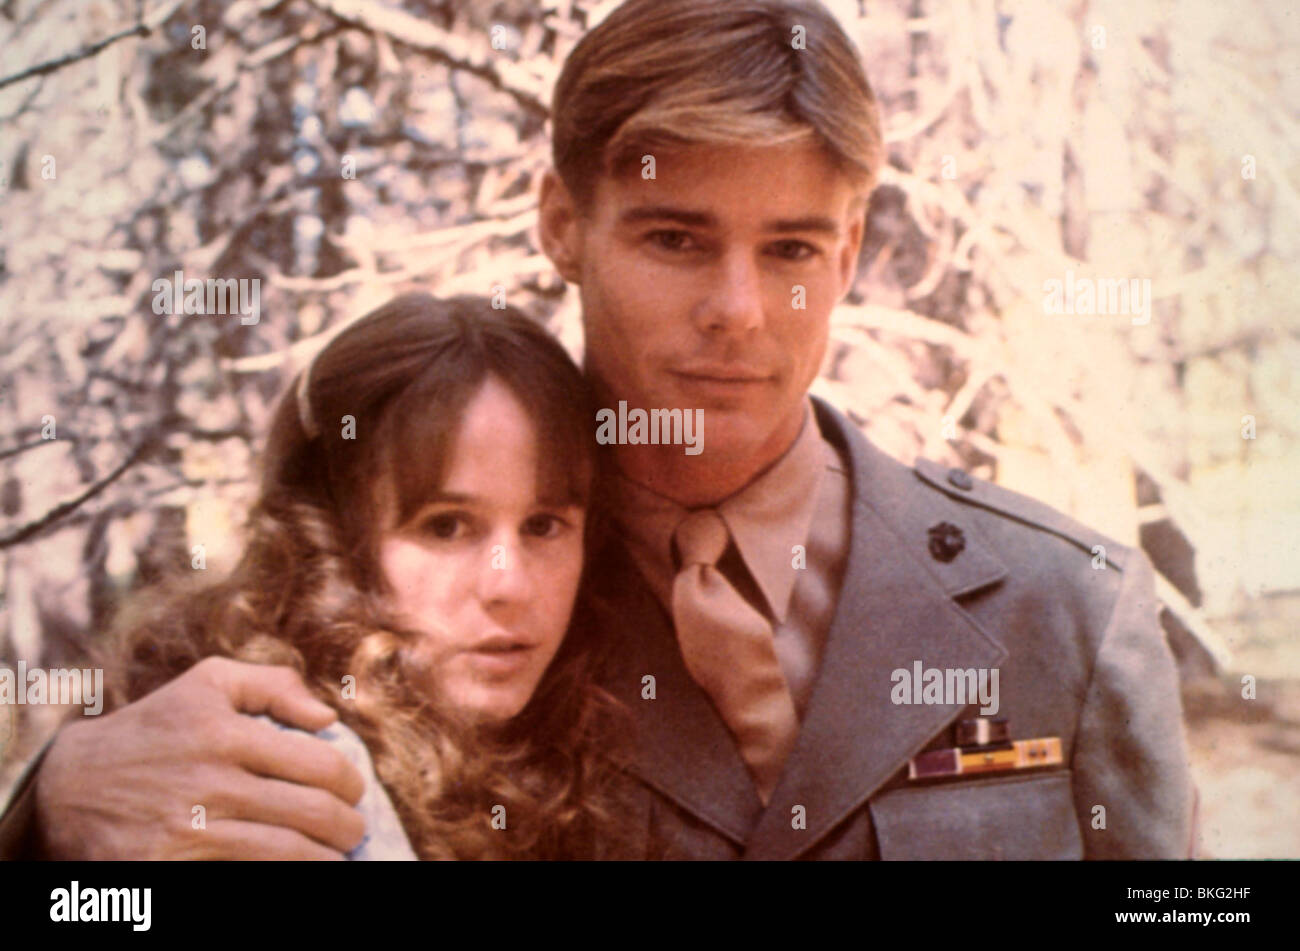 archangel from airwolf with Stock Photo Baby Blue Marine 1976 Glynnis Oconnor Jan Michael Vincent Bbm 001 29242123 on Pages also YmVsbCA0MzAgYWlyd29sZg moreover Airwolf 1985 Horn Of Plenty And Airwolf Ii furthermore Air Wolf Helicopter additionally Moffett 27s Ghost  episode.